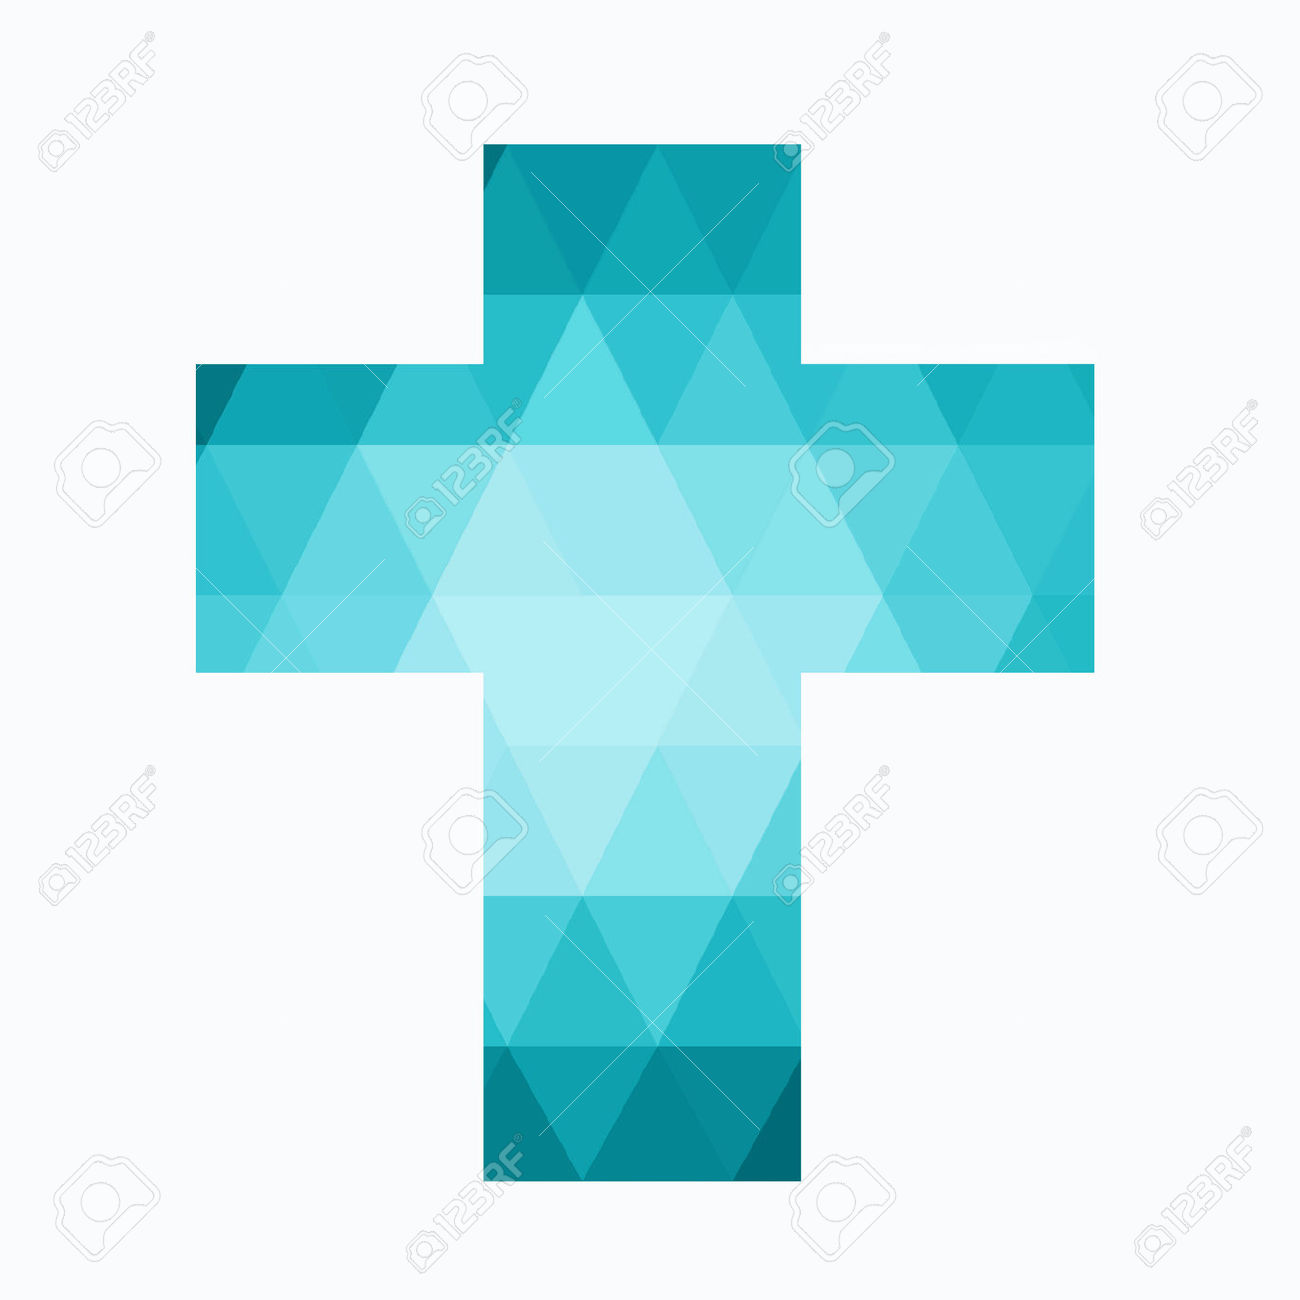 Easter Cross Clip Art Isolated On White Background, Low Poly.